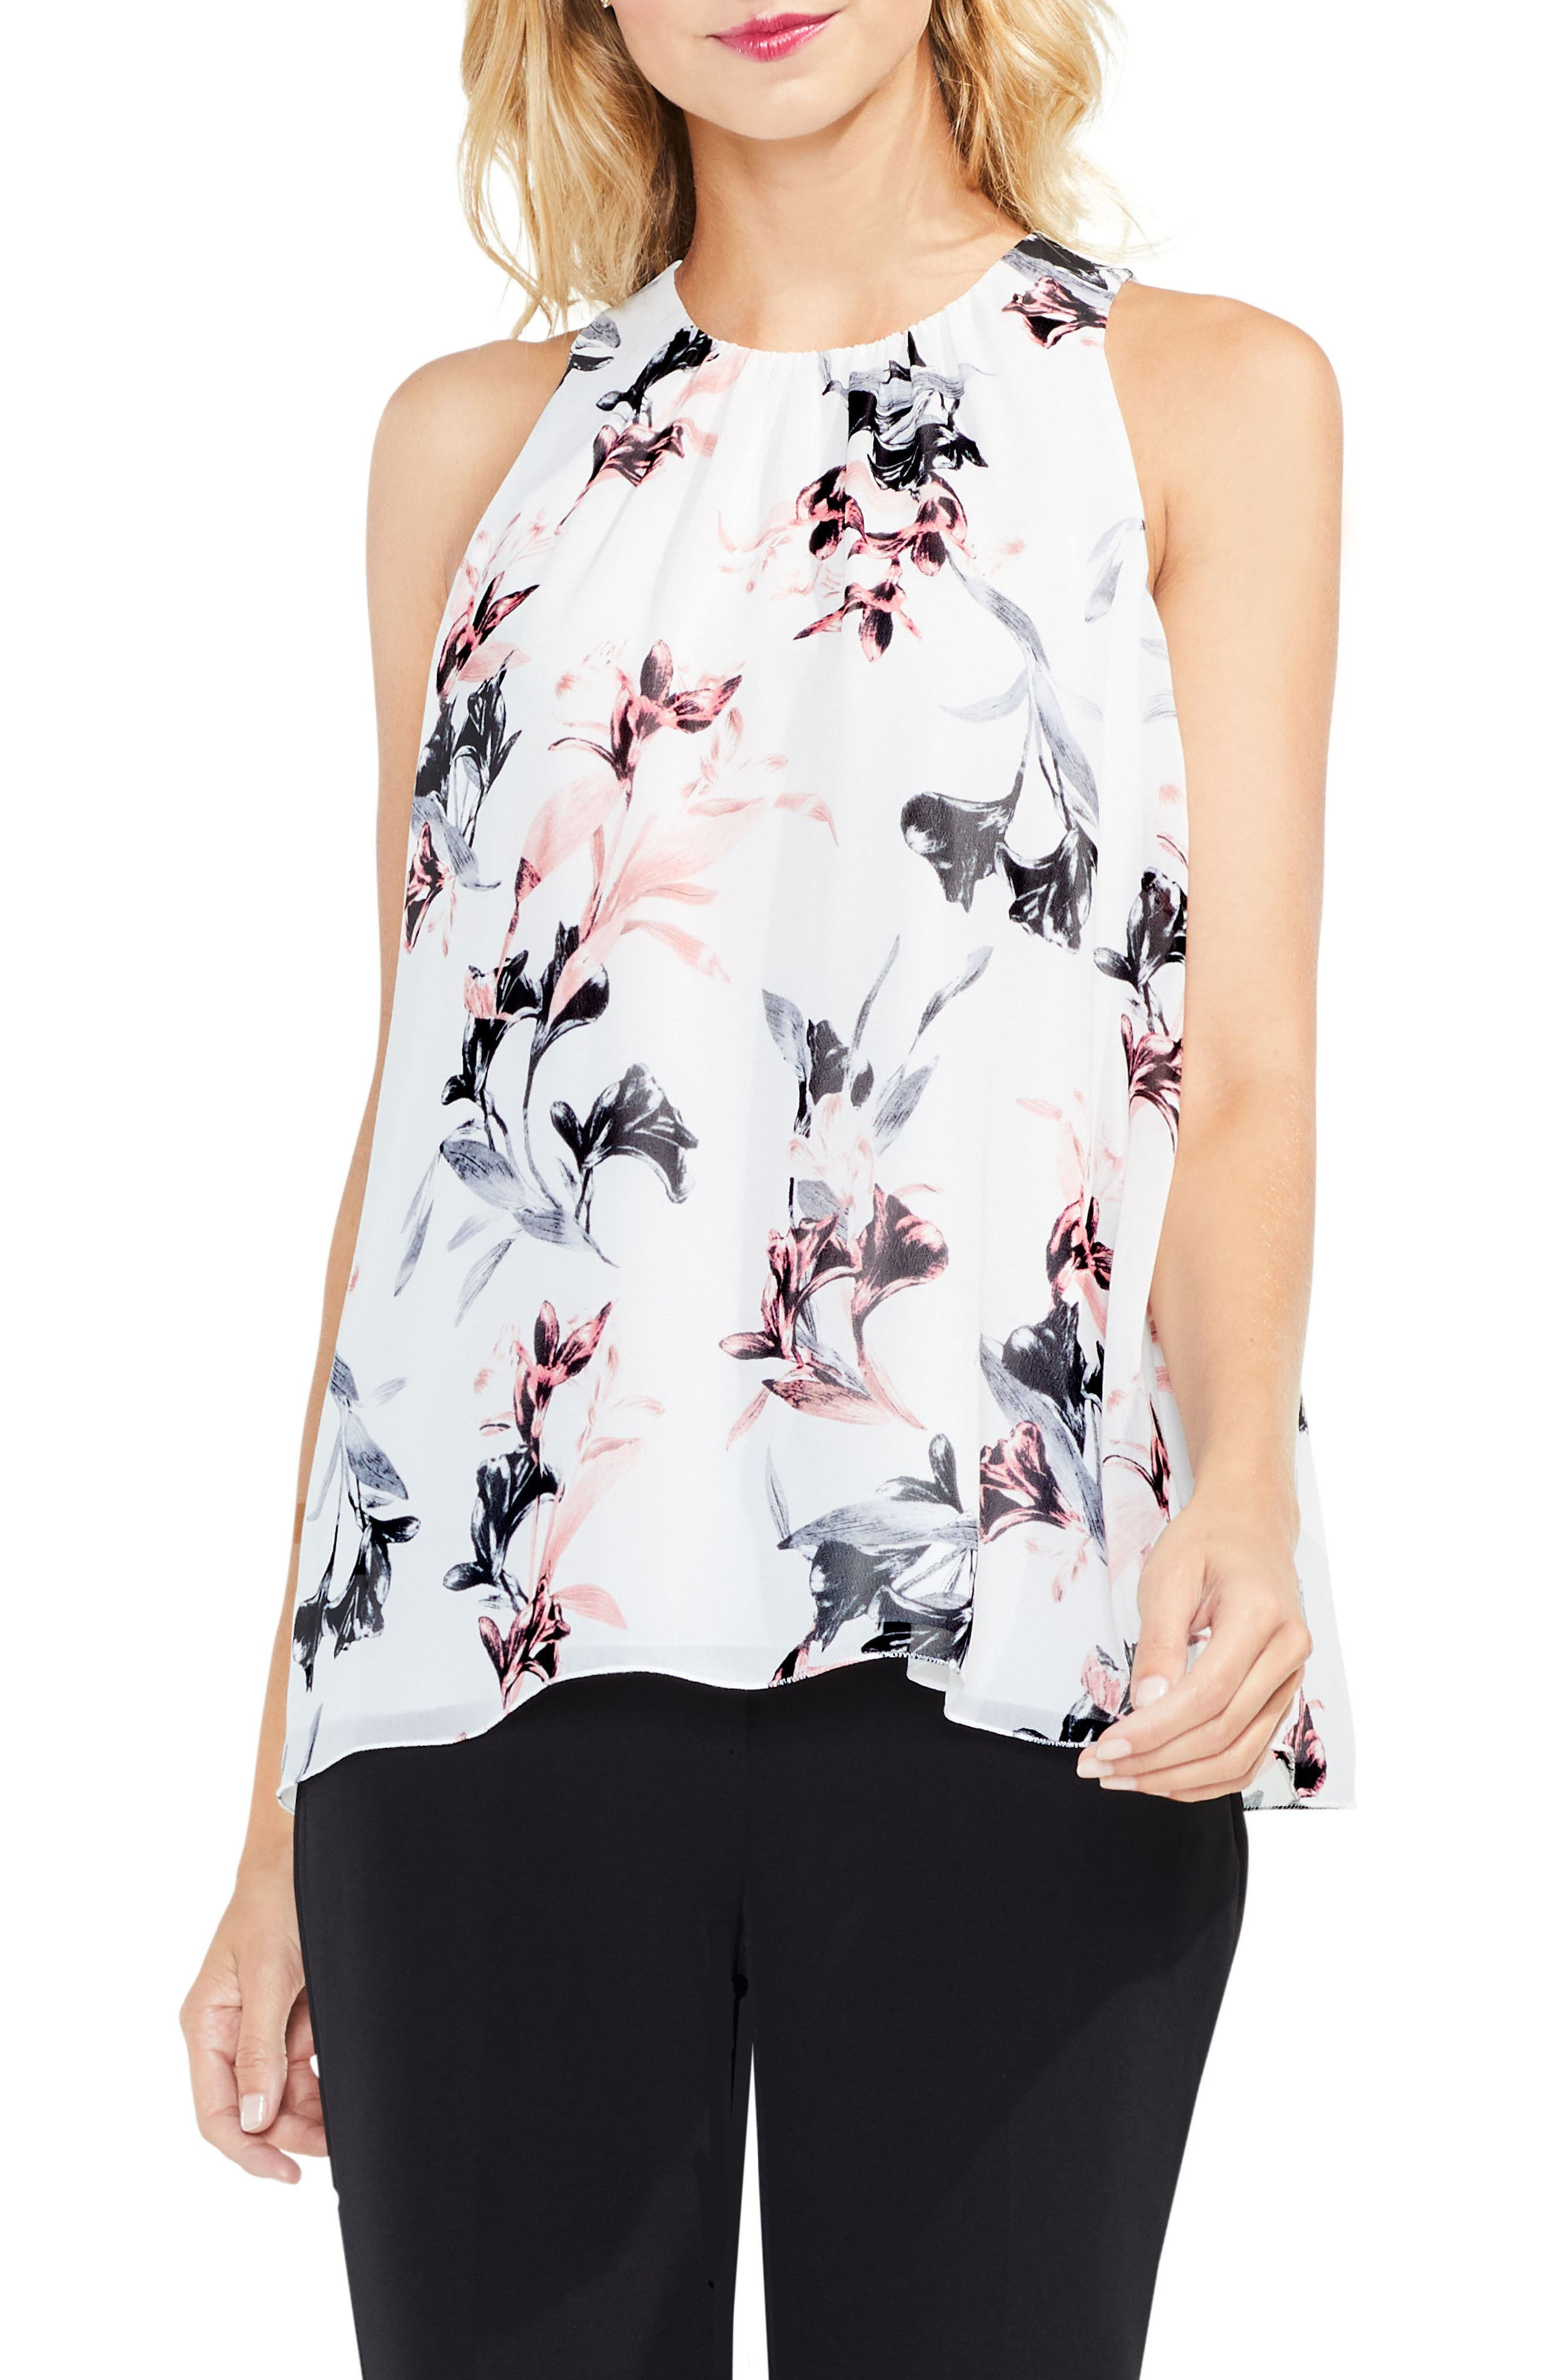 Main Image - Vince Camuto Lily Melody Sleeveless Blouse